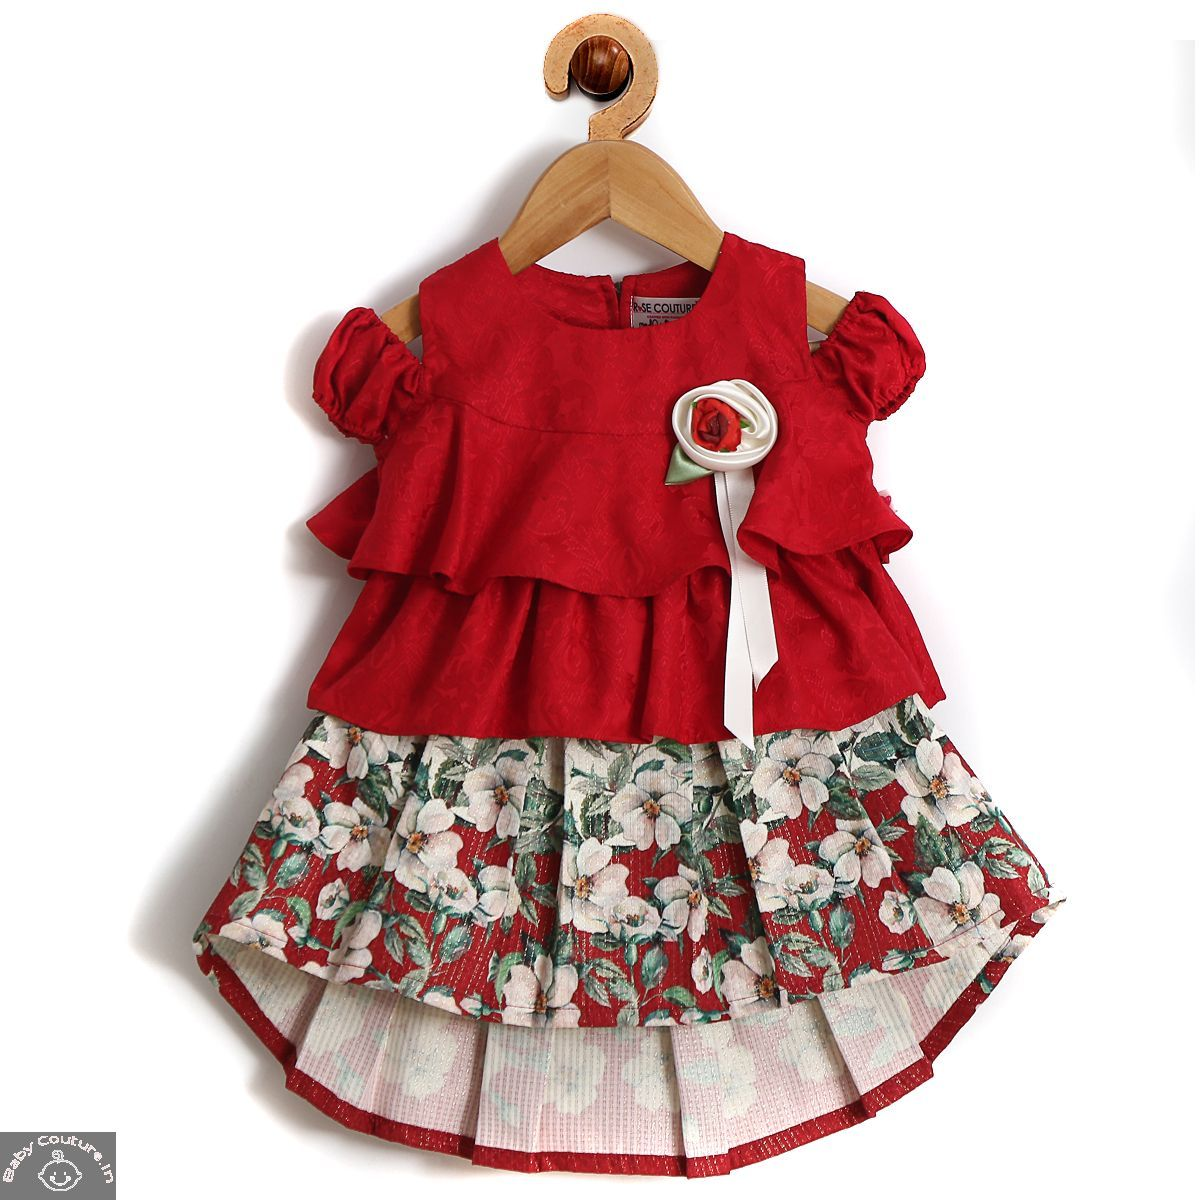 Rose Couture Layered And Pleated Skirt Top Set  Baby girl dresses